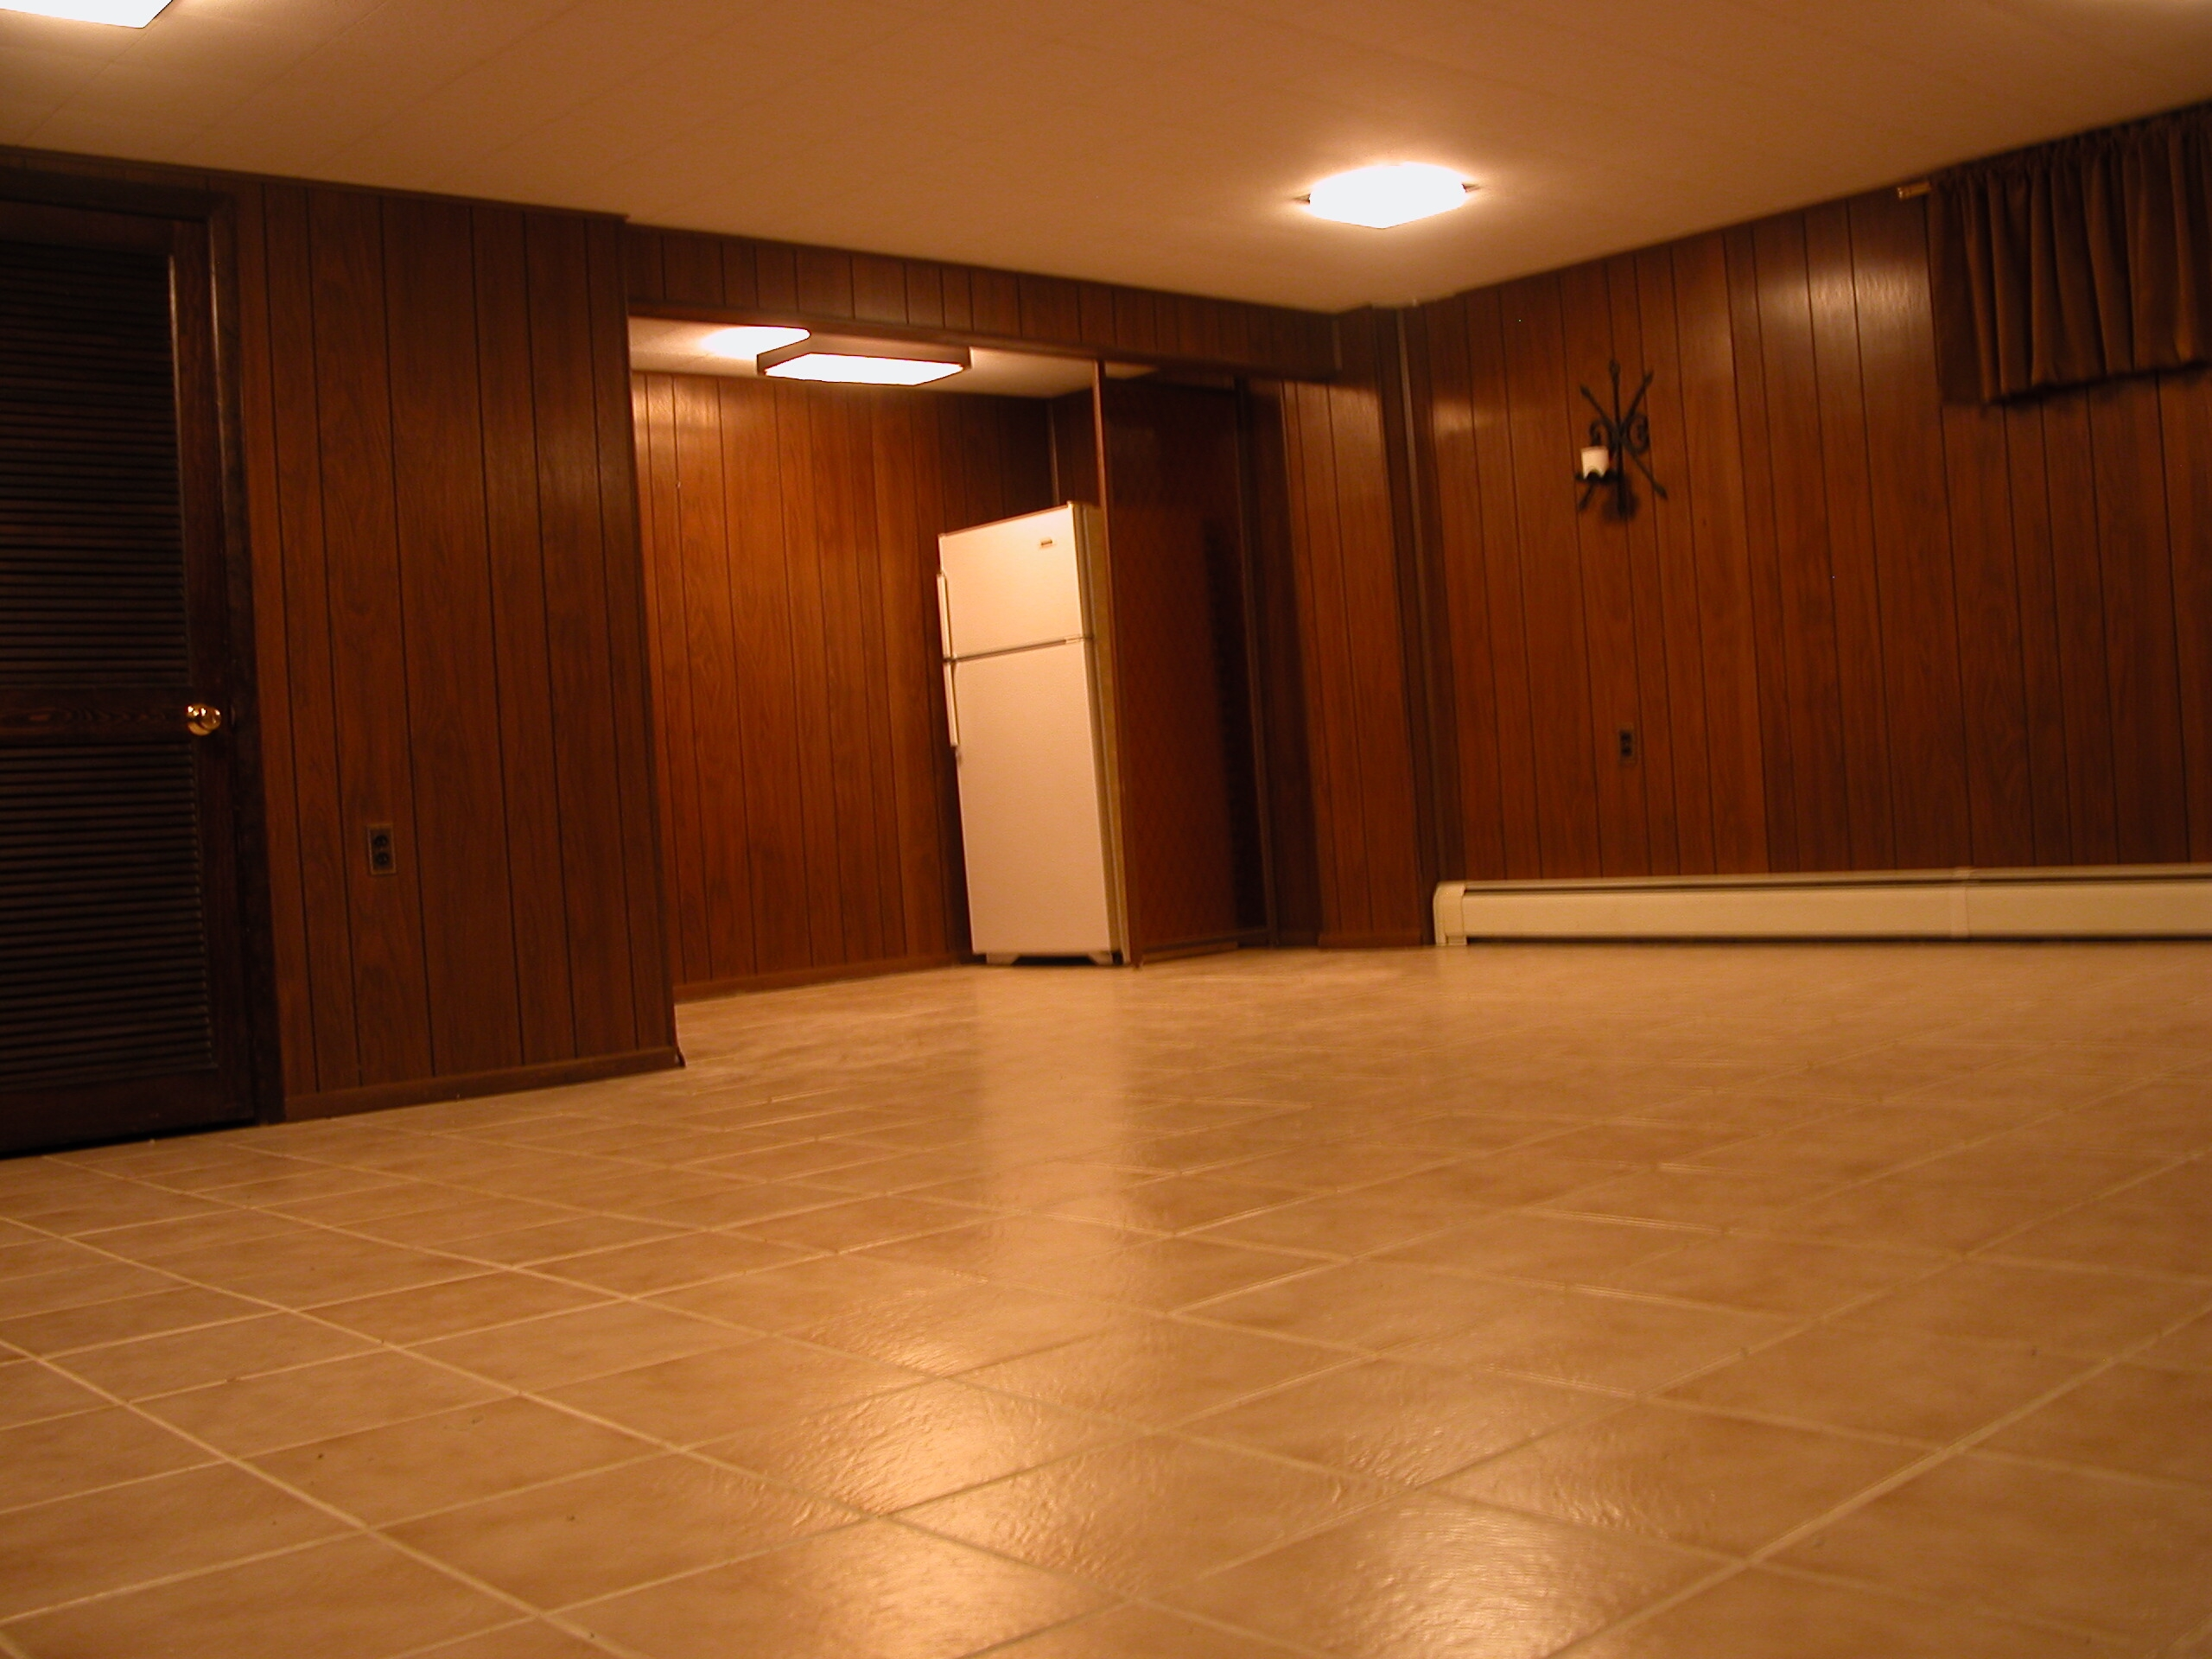 Best Basement Floor Tilesfinished basement floor stained concrete in my finished